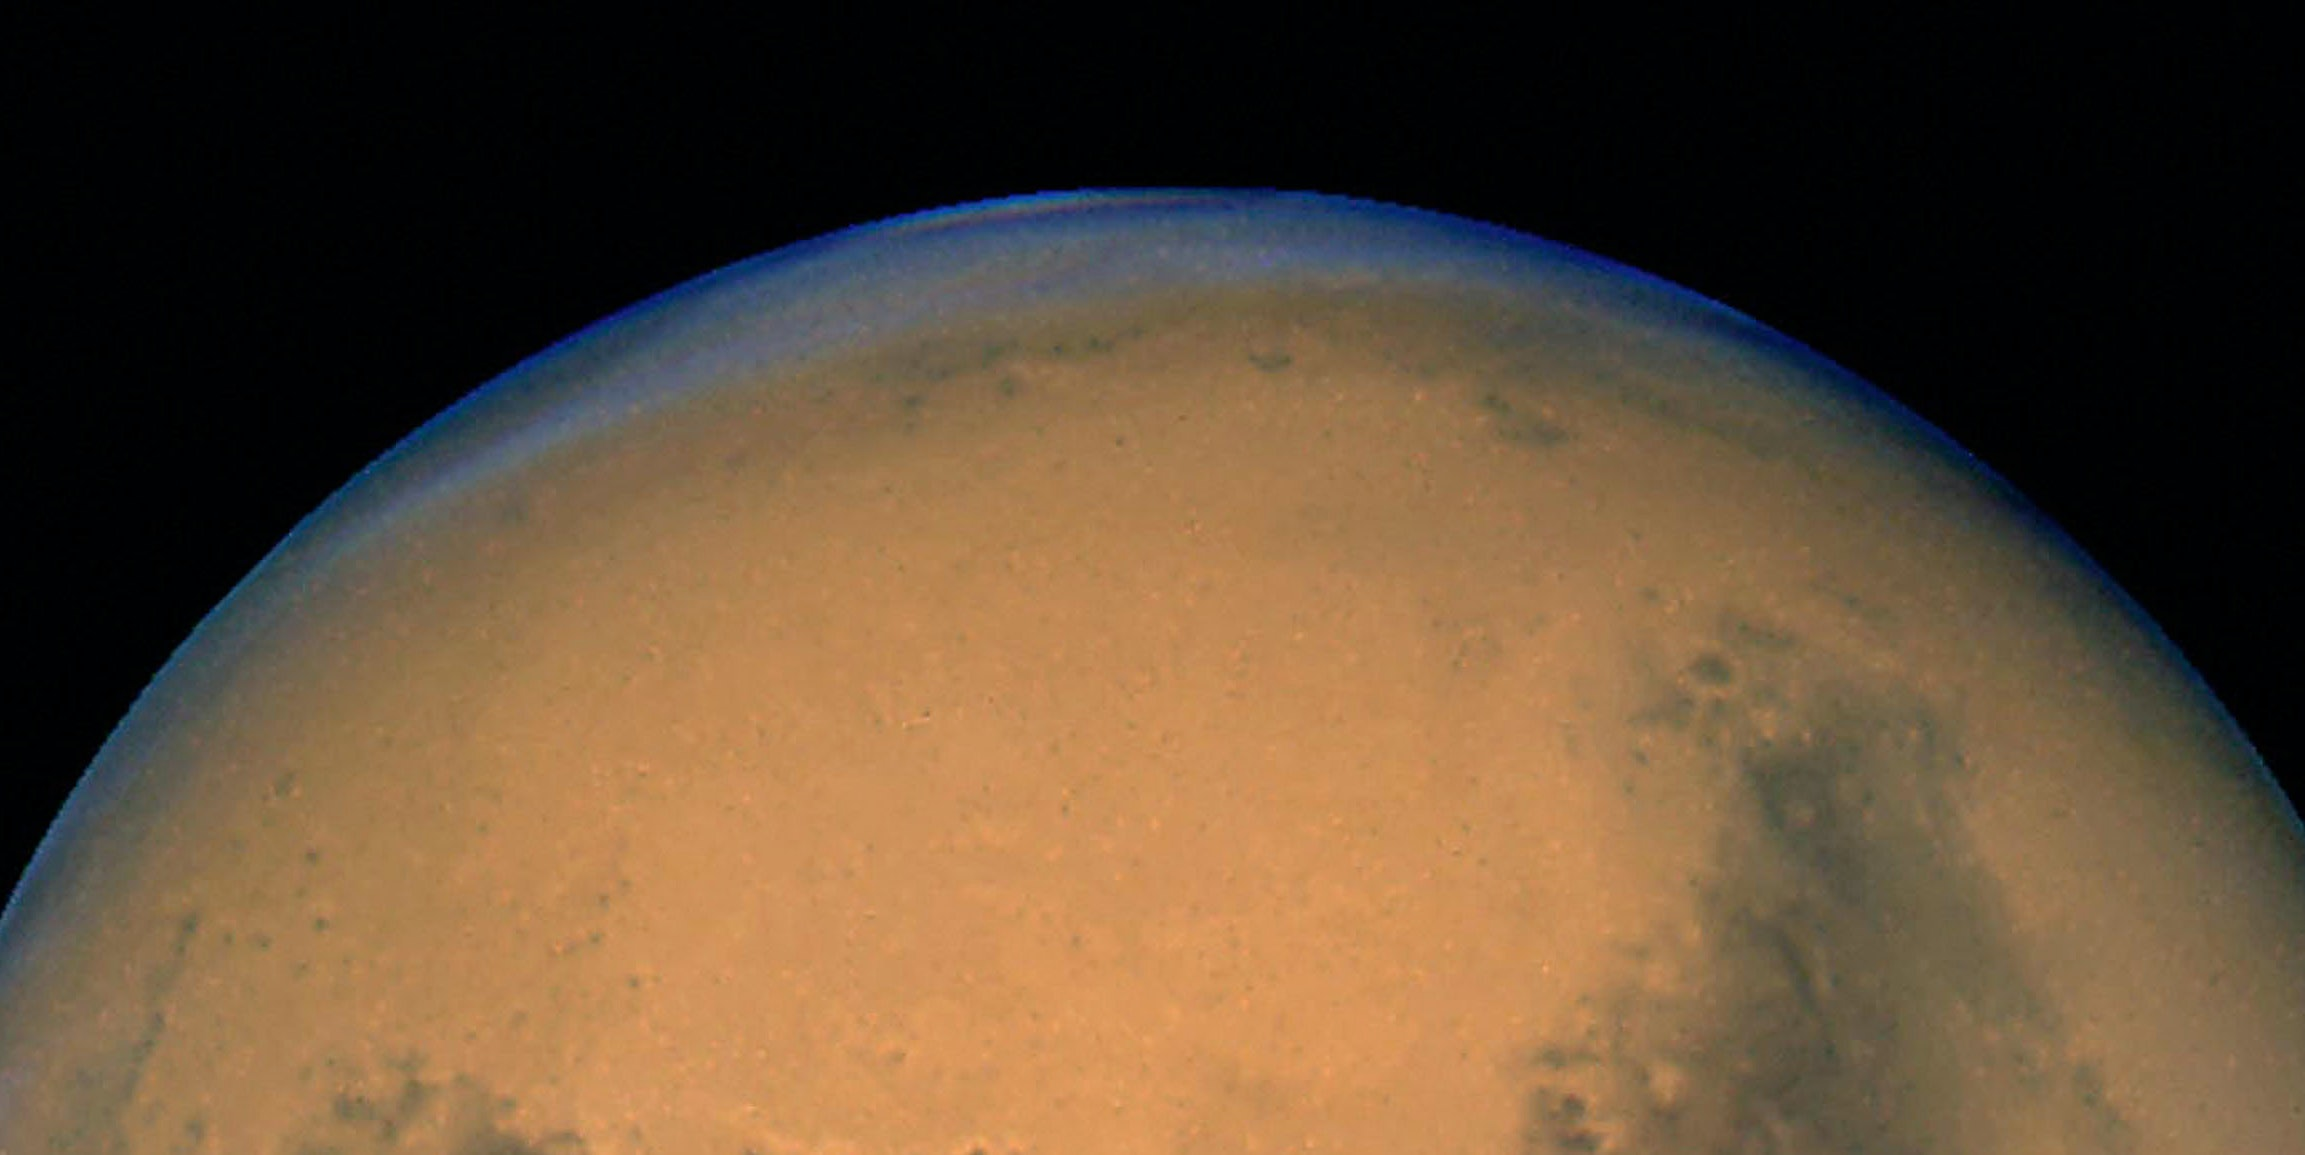 IN SPACE - AUGUST 26:  This image released August 27, 2003 captured by NASA's Hubble Space Telescope shows a close-up of the red planet Mars when it was just 34,648,840 miles (55,760,220 km) away. This color image was assembled from a series of exposures taken between 6:20 p.m. and 7:12 p.m. EDT  August  26, 2003 with Hubble's Wide Field and Planetary Camera 2. The picture was taken just 11 hours before the planet made its closest approach to Earth in 60,000 years. Many small, dark, circular impact craters can be seen, attesting to the Hubble telescope's ability to reveal fine detail on the planet's surface. (Photo by NASA/Getty Images)